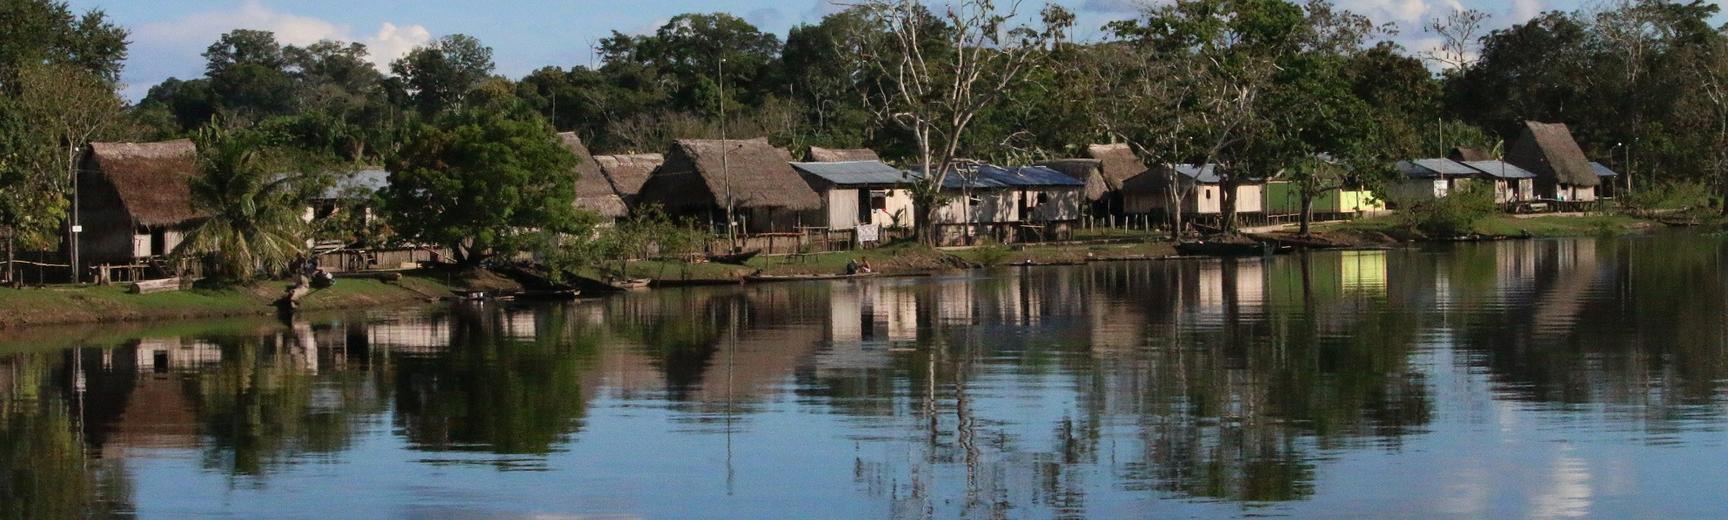 Sarah Papworth's peruvian amazon photo,  river and houses along the bank. reflection of blue sky and clouds in the river